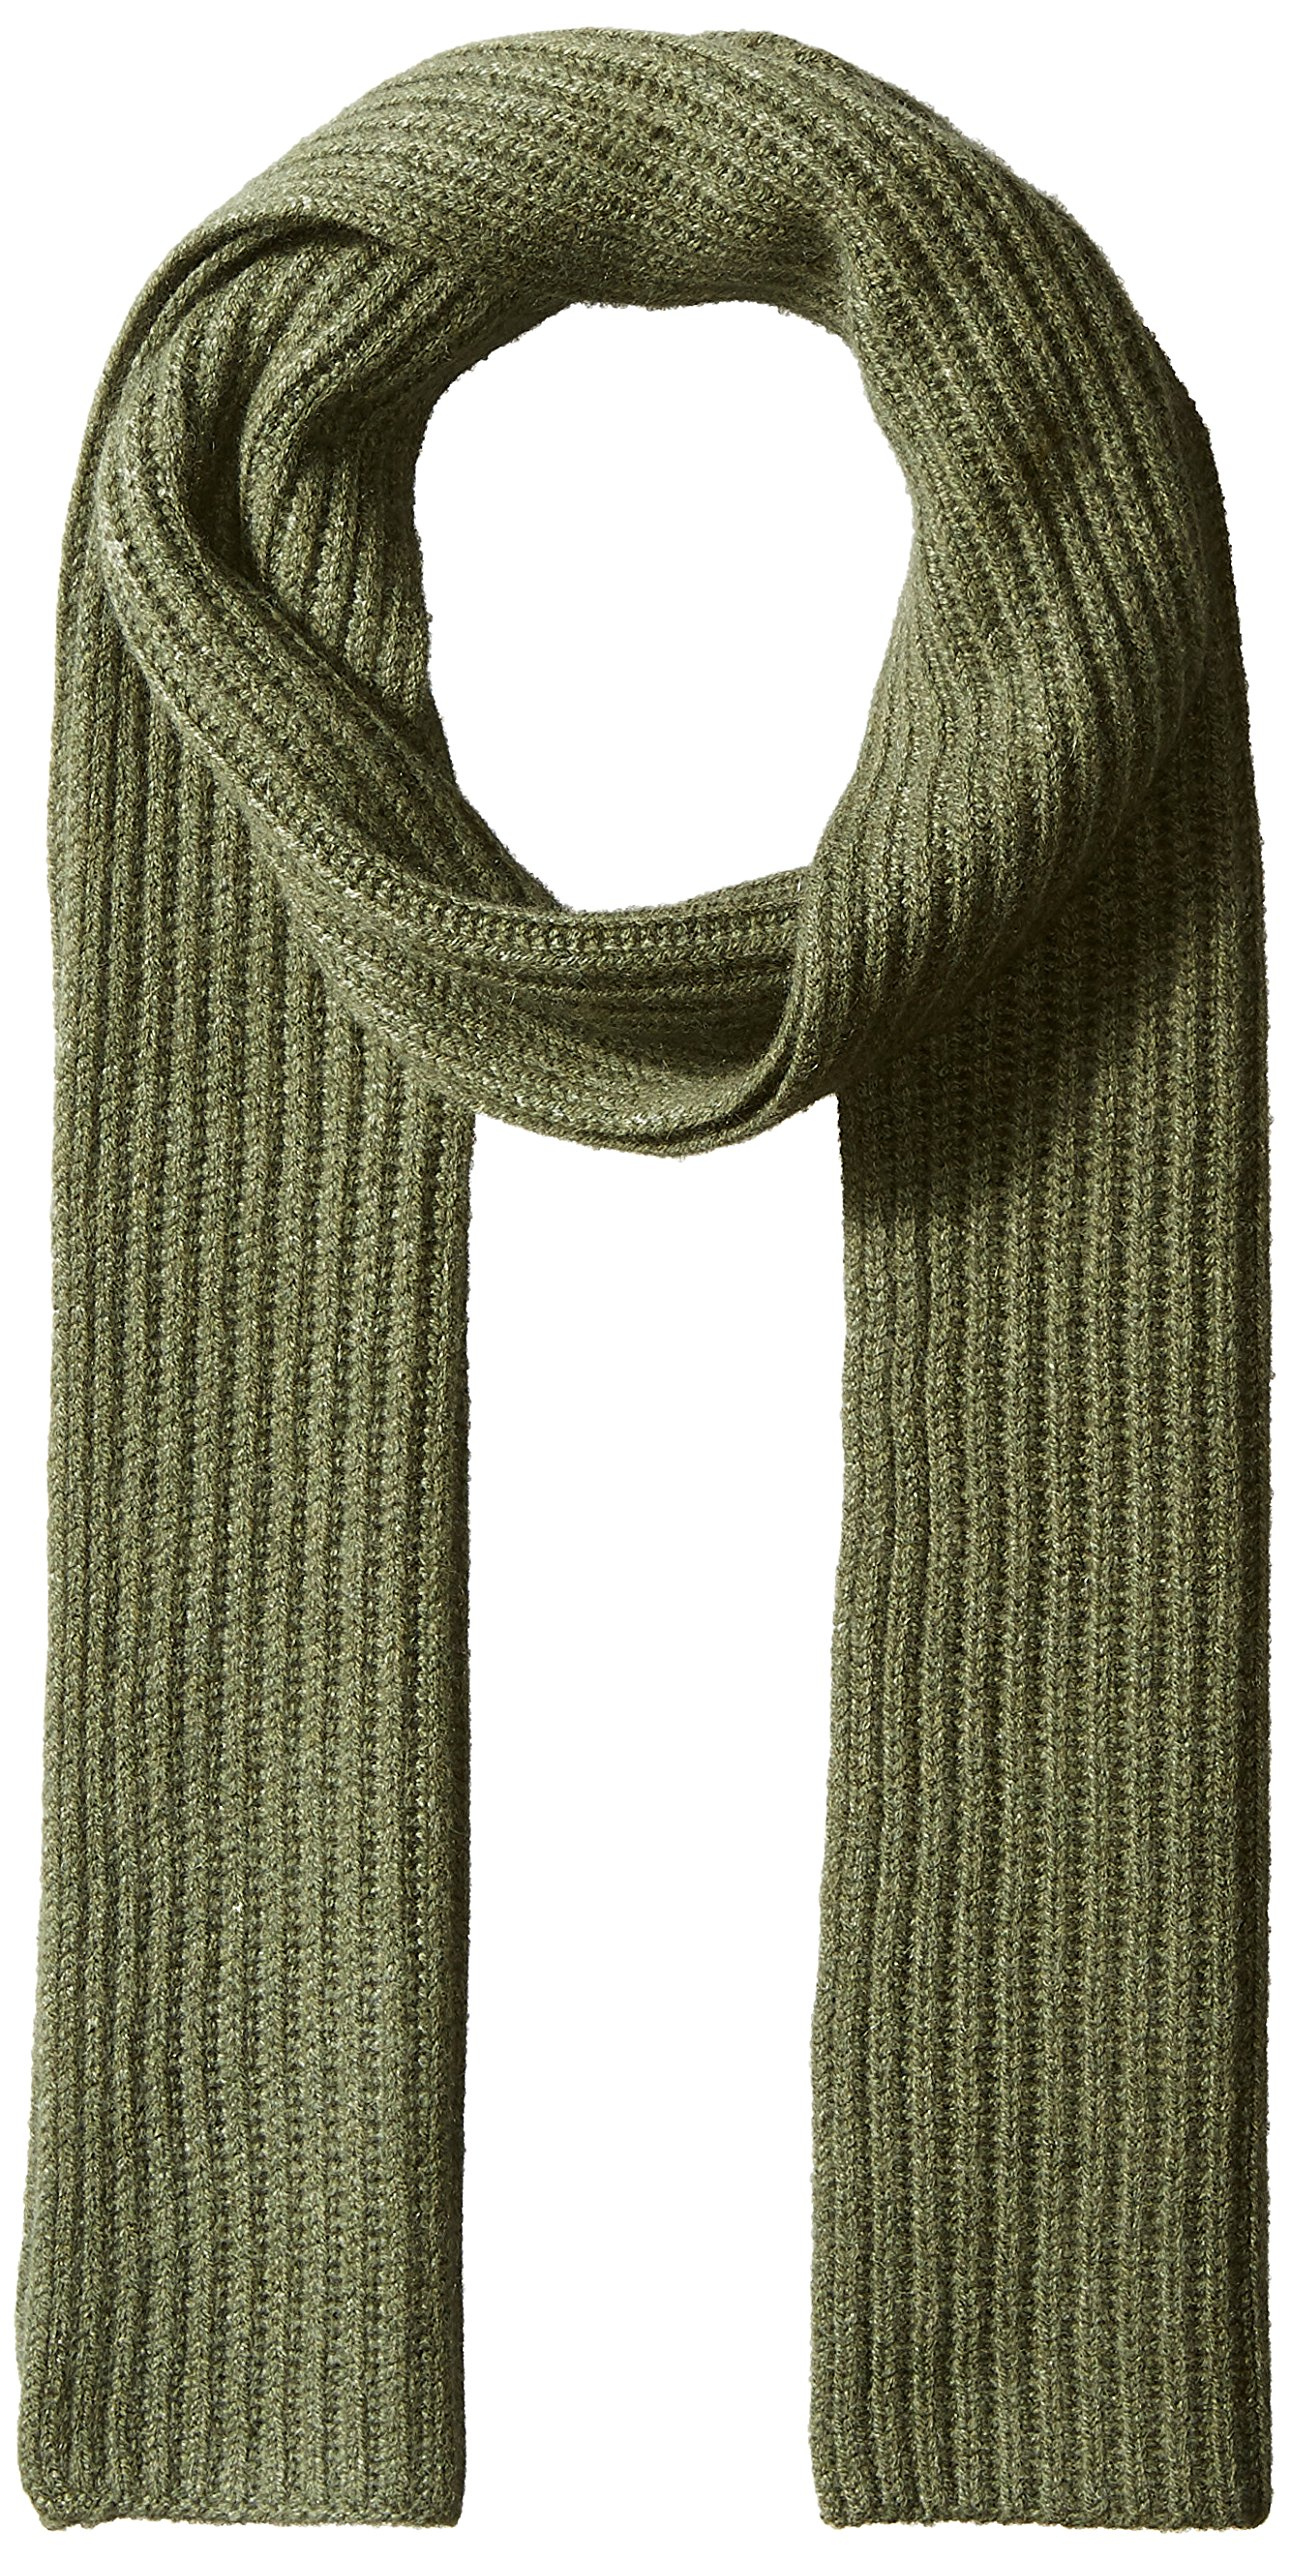 Williams Cashmere Men's 100% Cashmere Chunky Full Cardigan Scarf, New Olive Combo, One Size